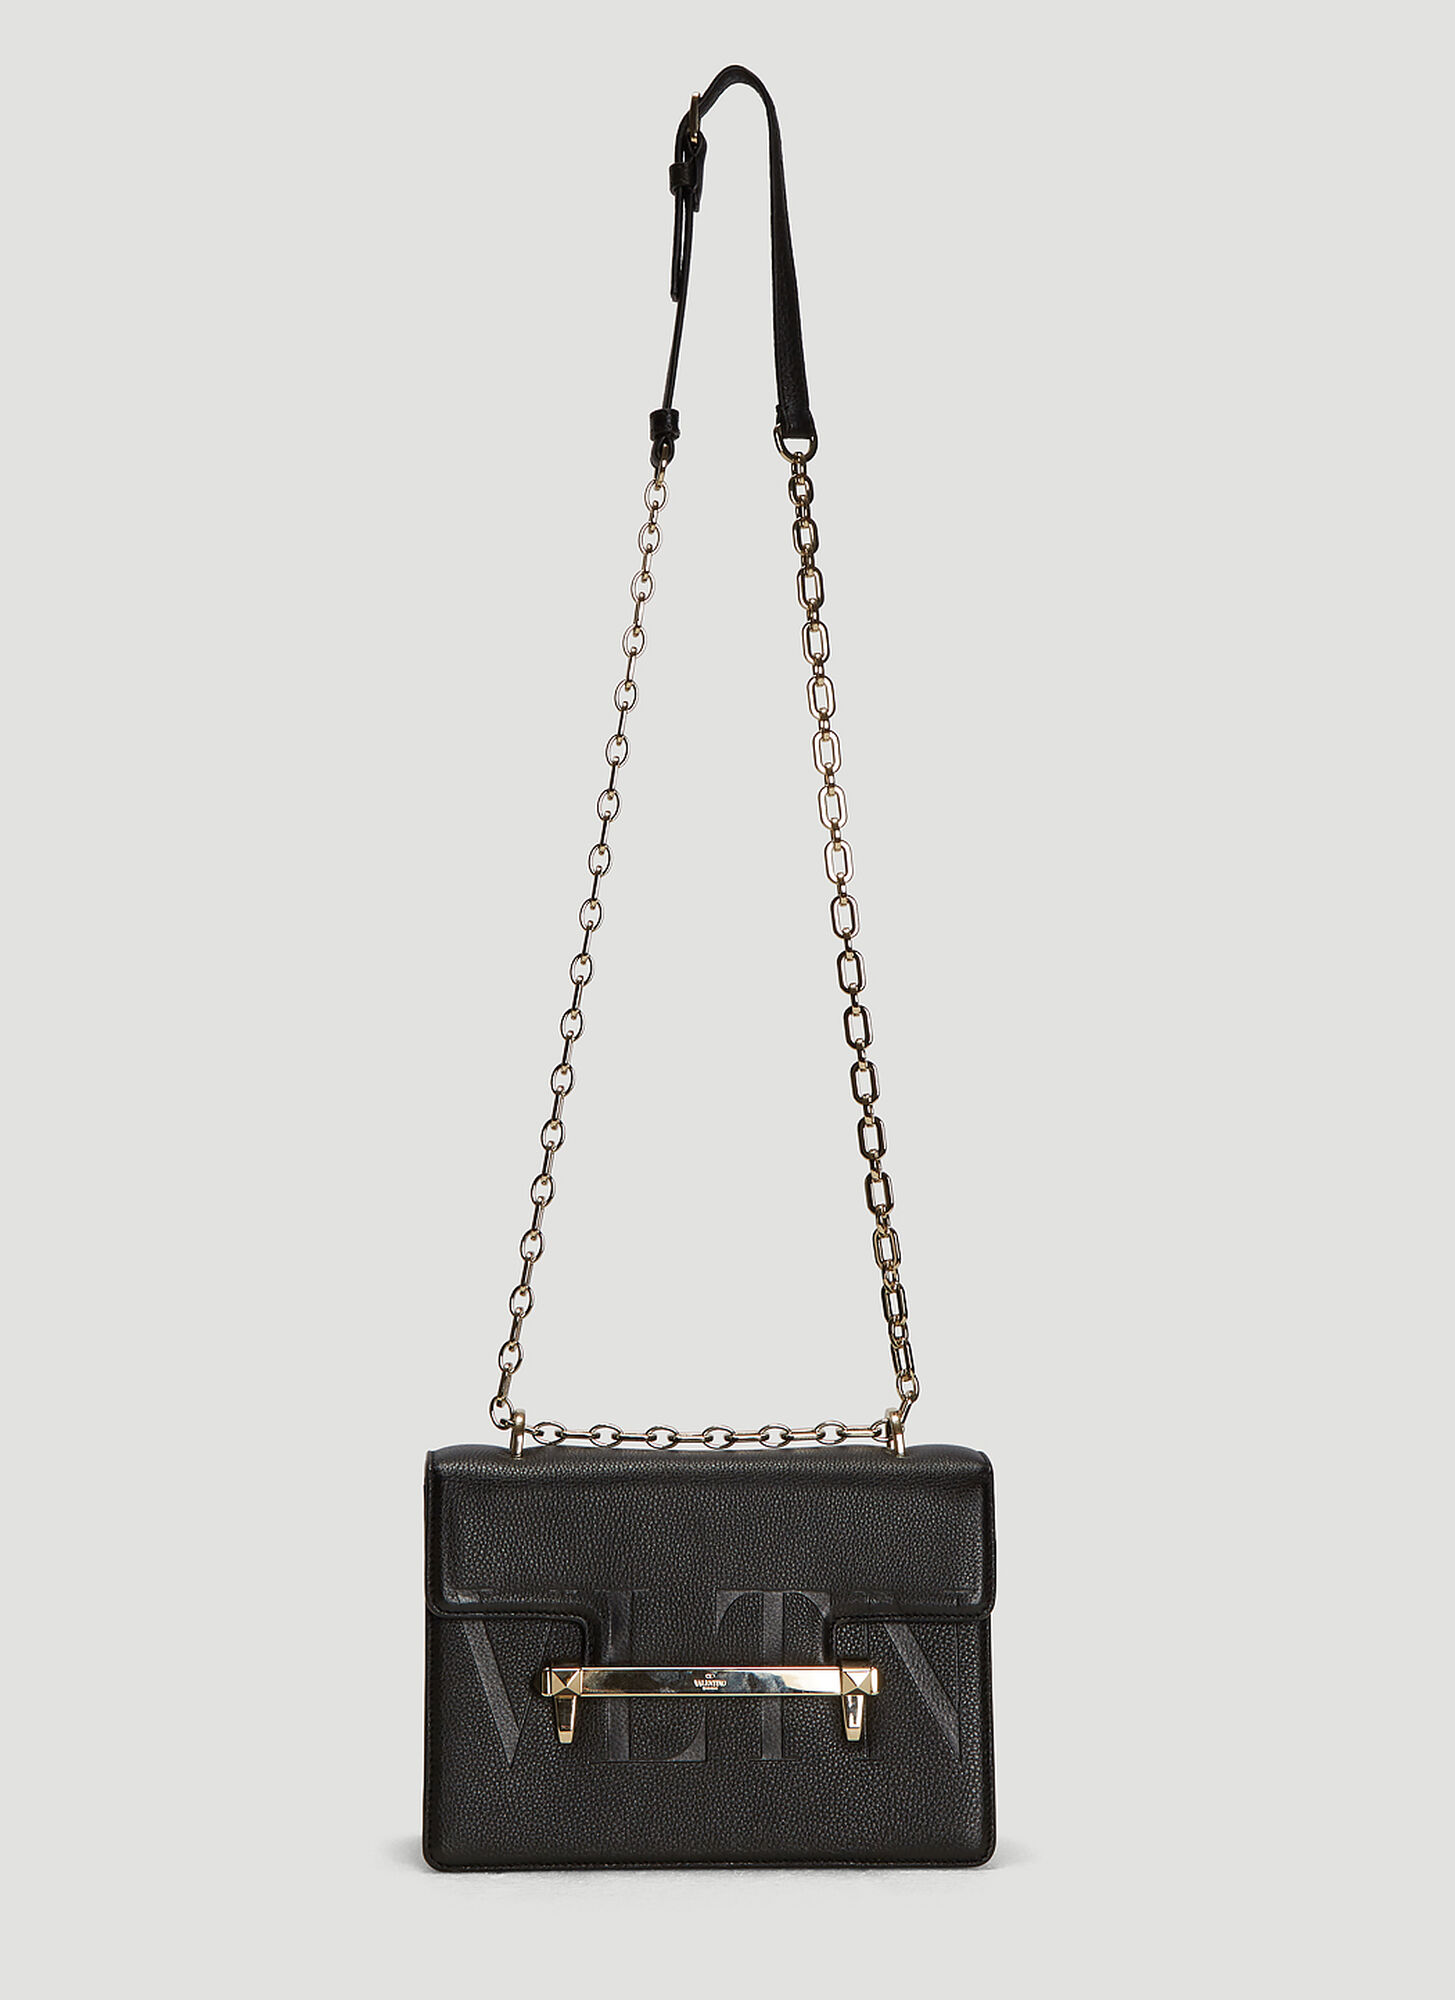 Valentino Medium VLTN Uptown Shoulder Bag in Black